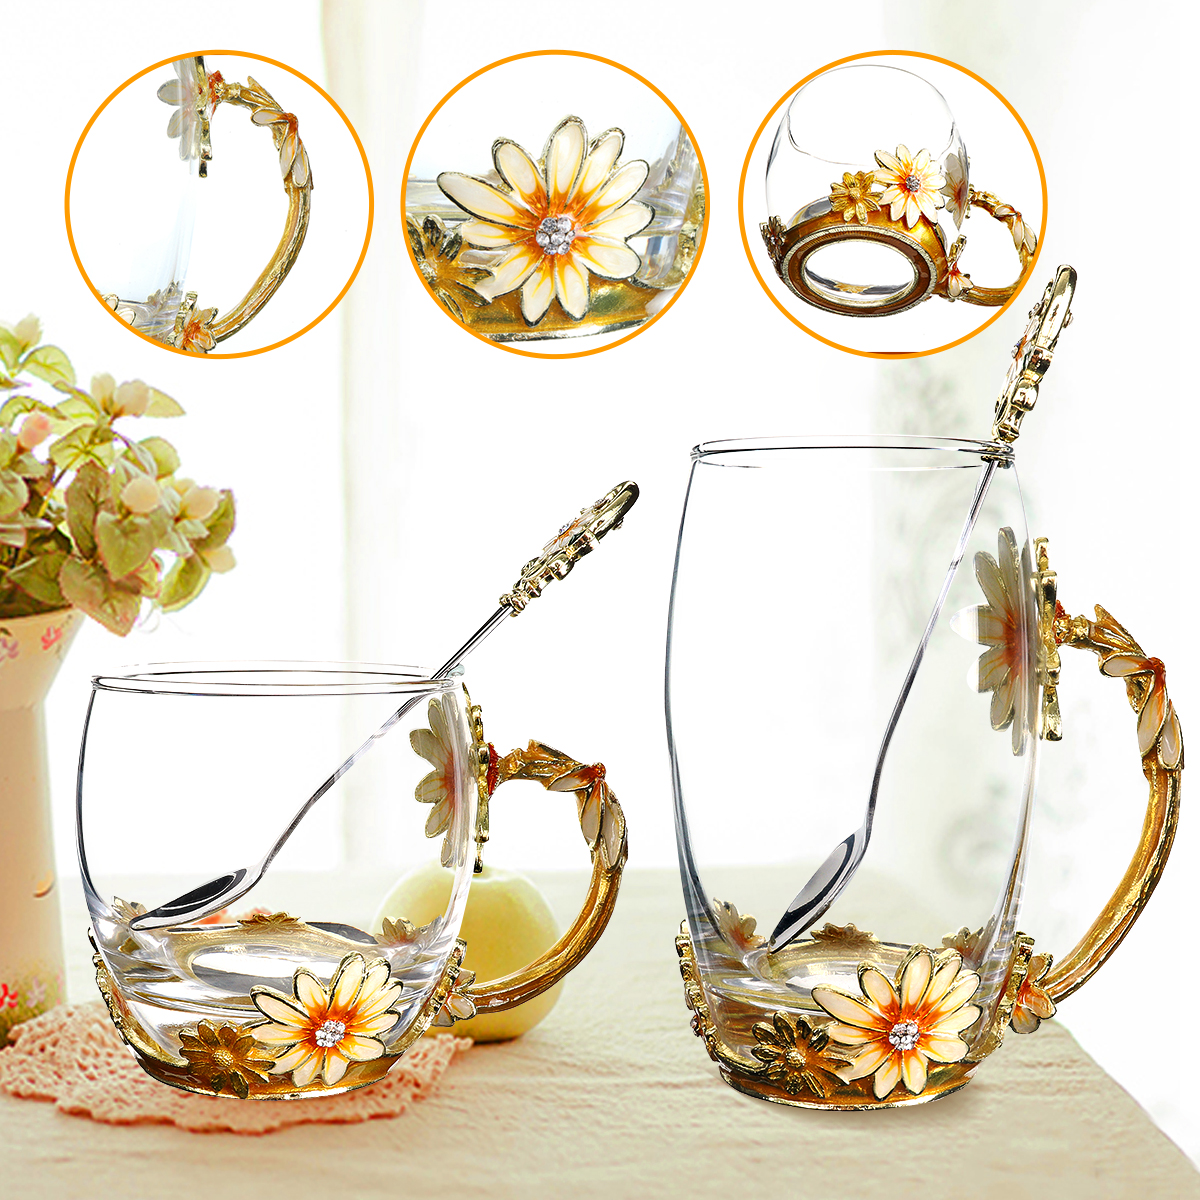 Buy Daisy Tea And Get Free Shipping On Aliexpress